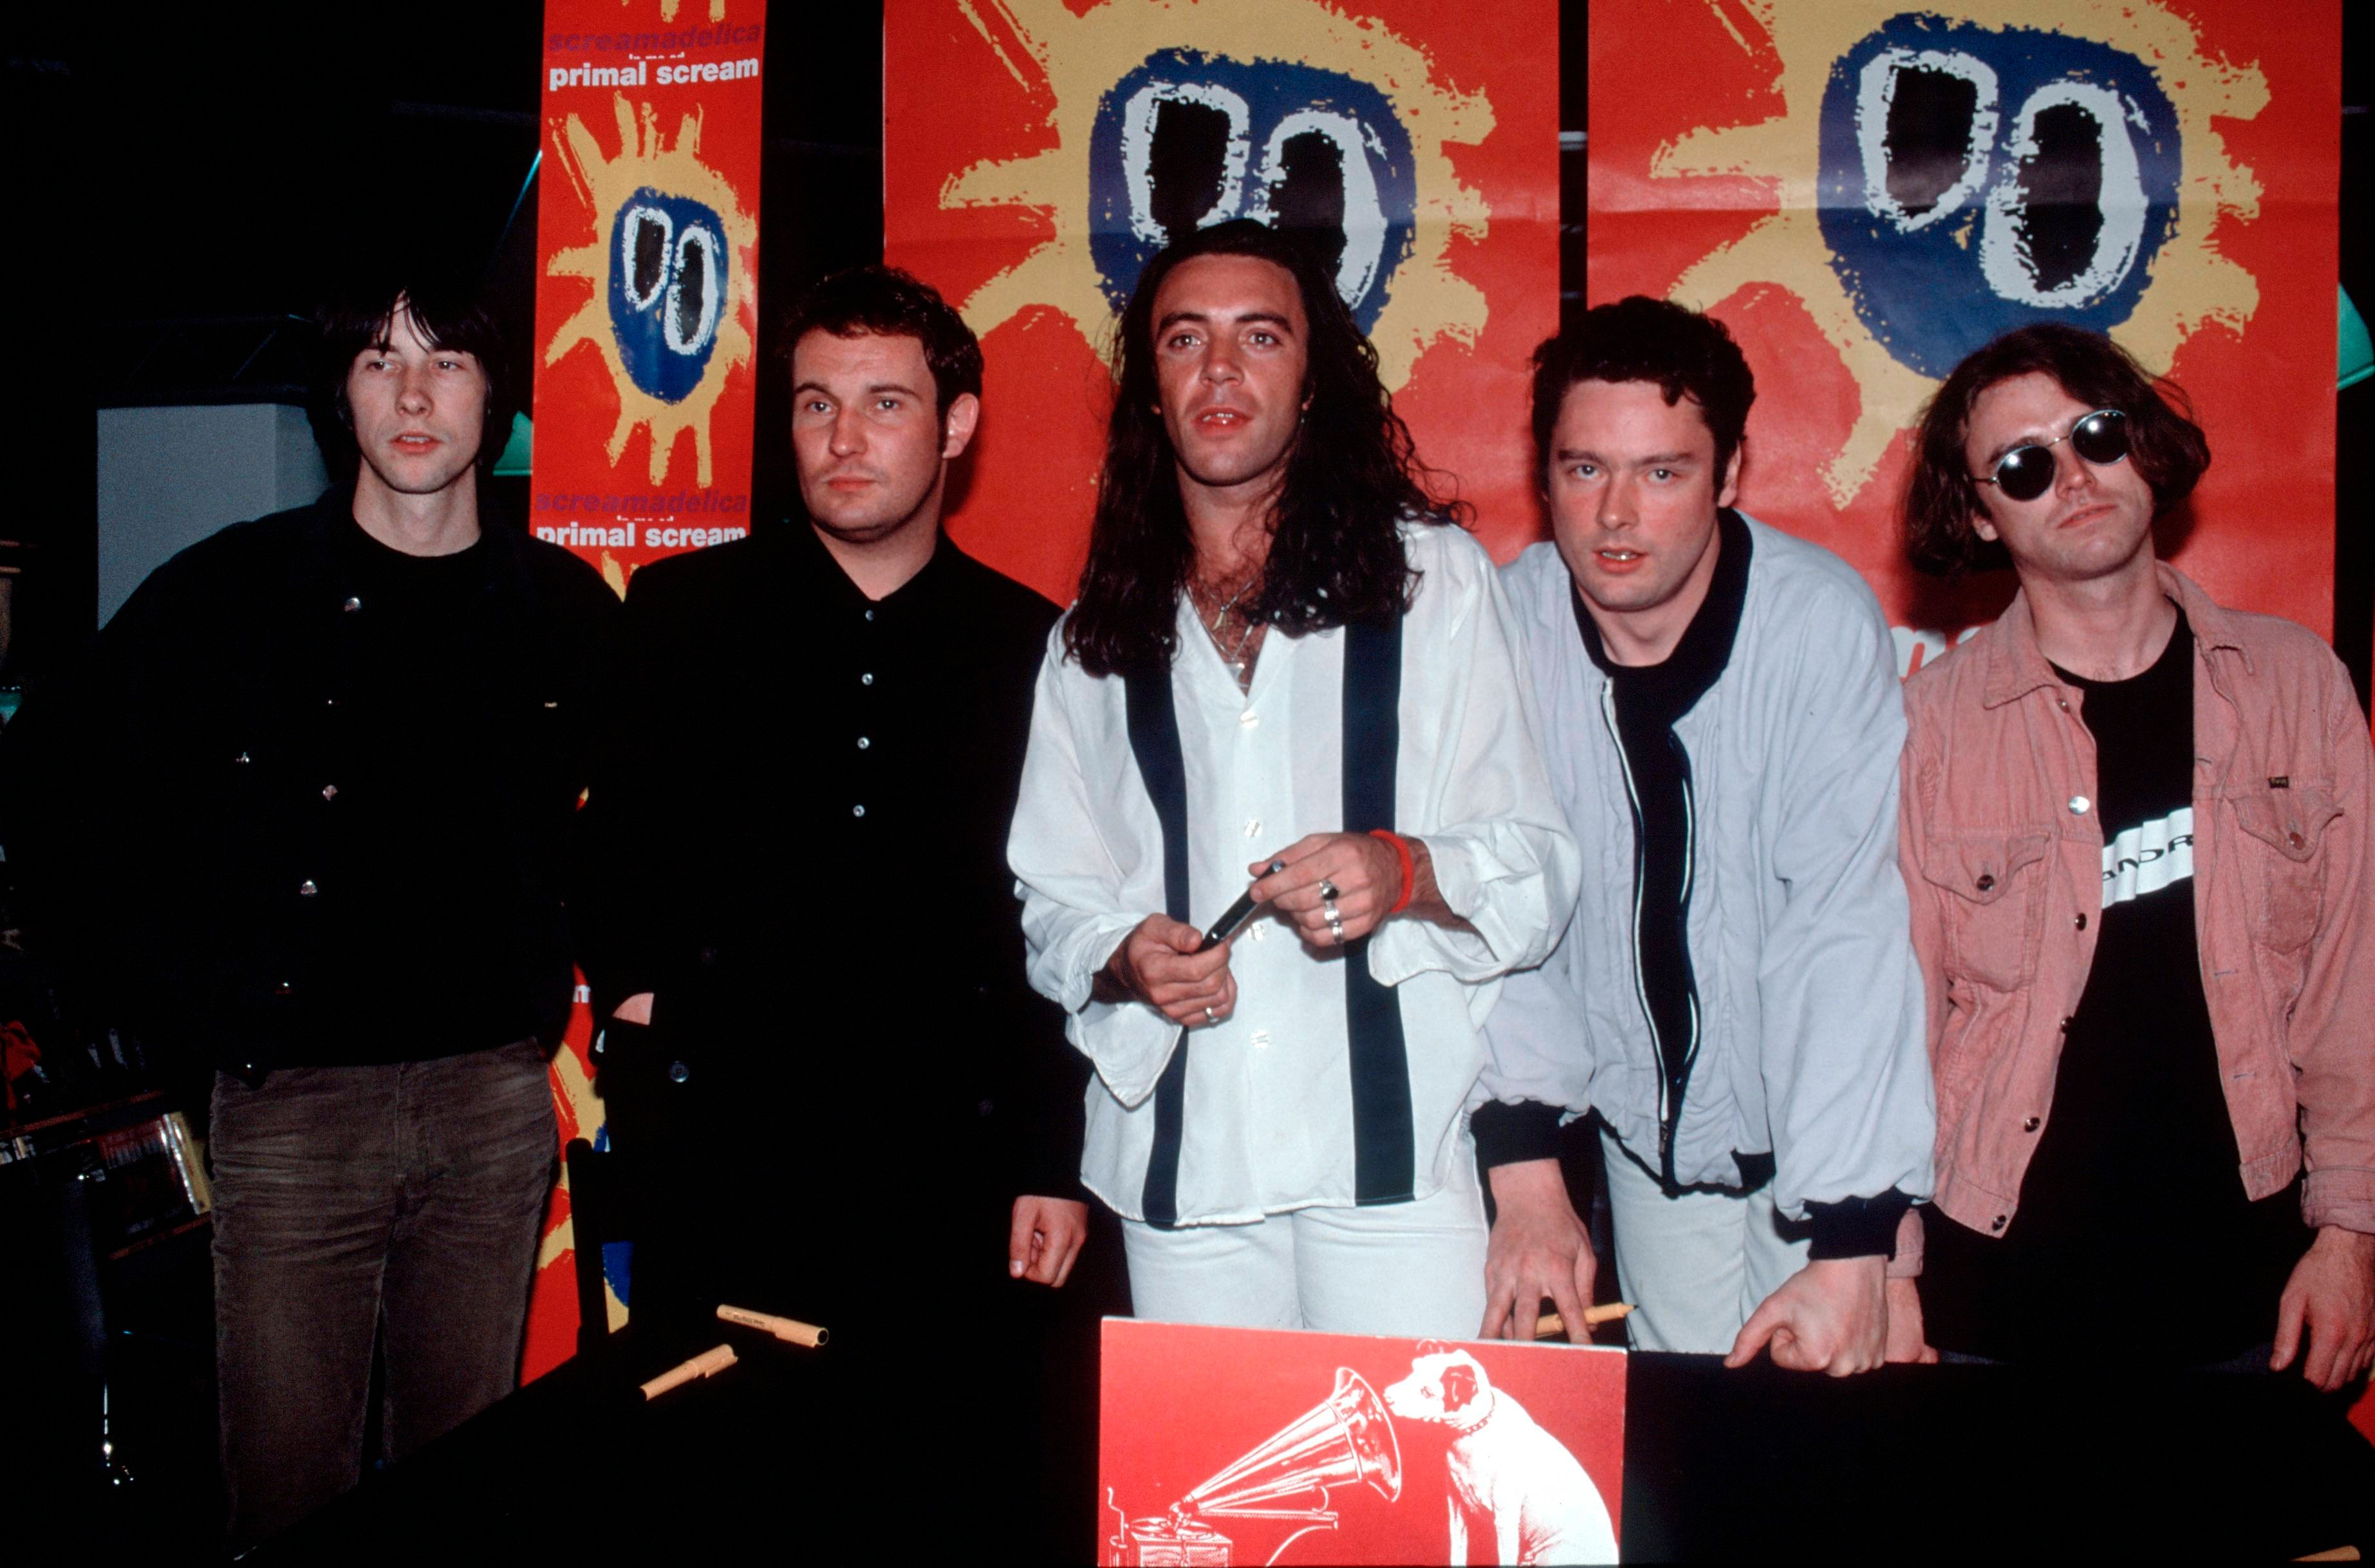 Photo of Robert YOUNG and PRIMAL SCREAM and Henry OLSEN and Bobby GILLESPIE and Andrew INNES